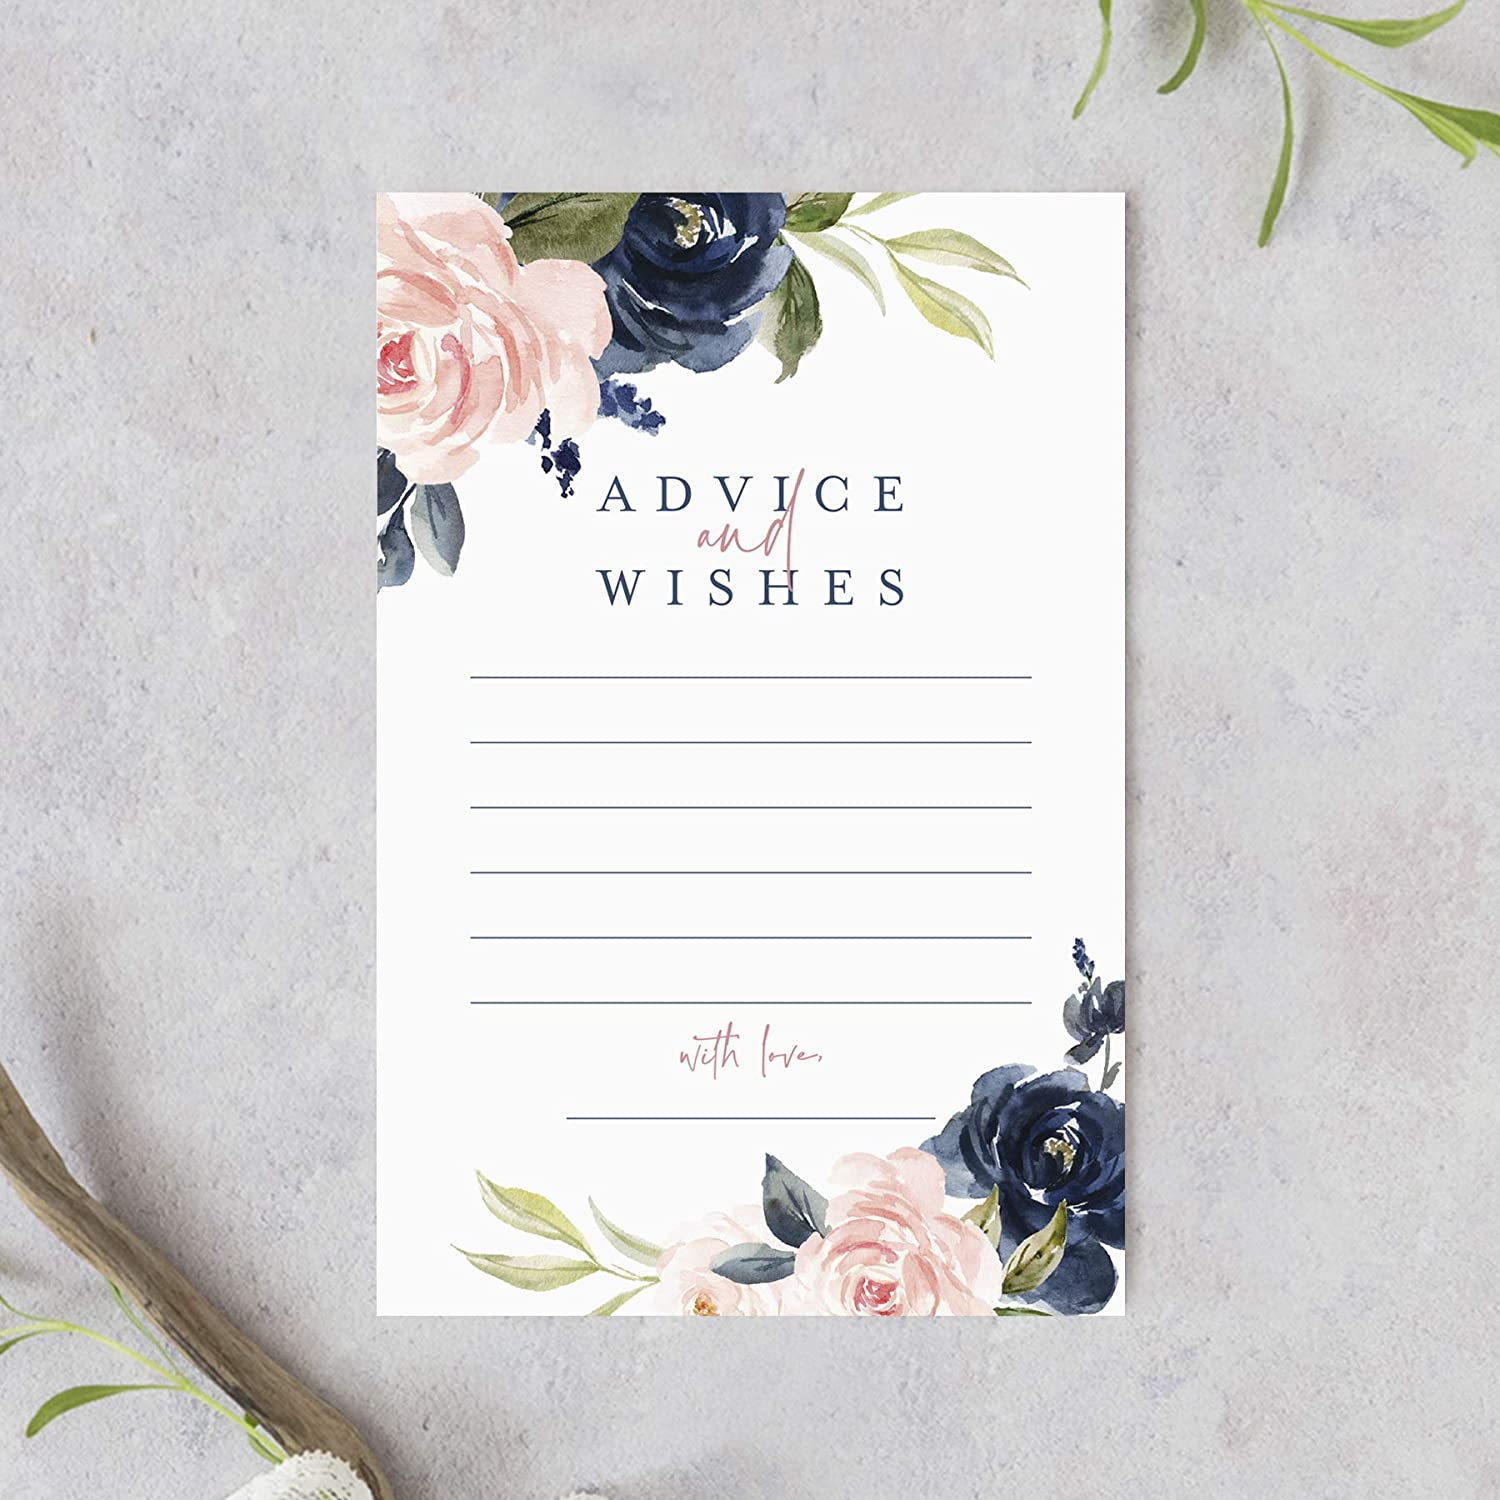 Bliss Collections Navy Floral Advice and Wishes Cards for the Bride and Groom, Perfect for: Bridal Shower, Baby Shower, Graduation, Wedding, Pack of 50 4x6 Cards